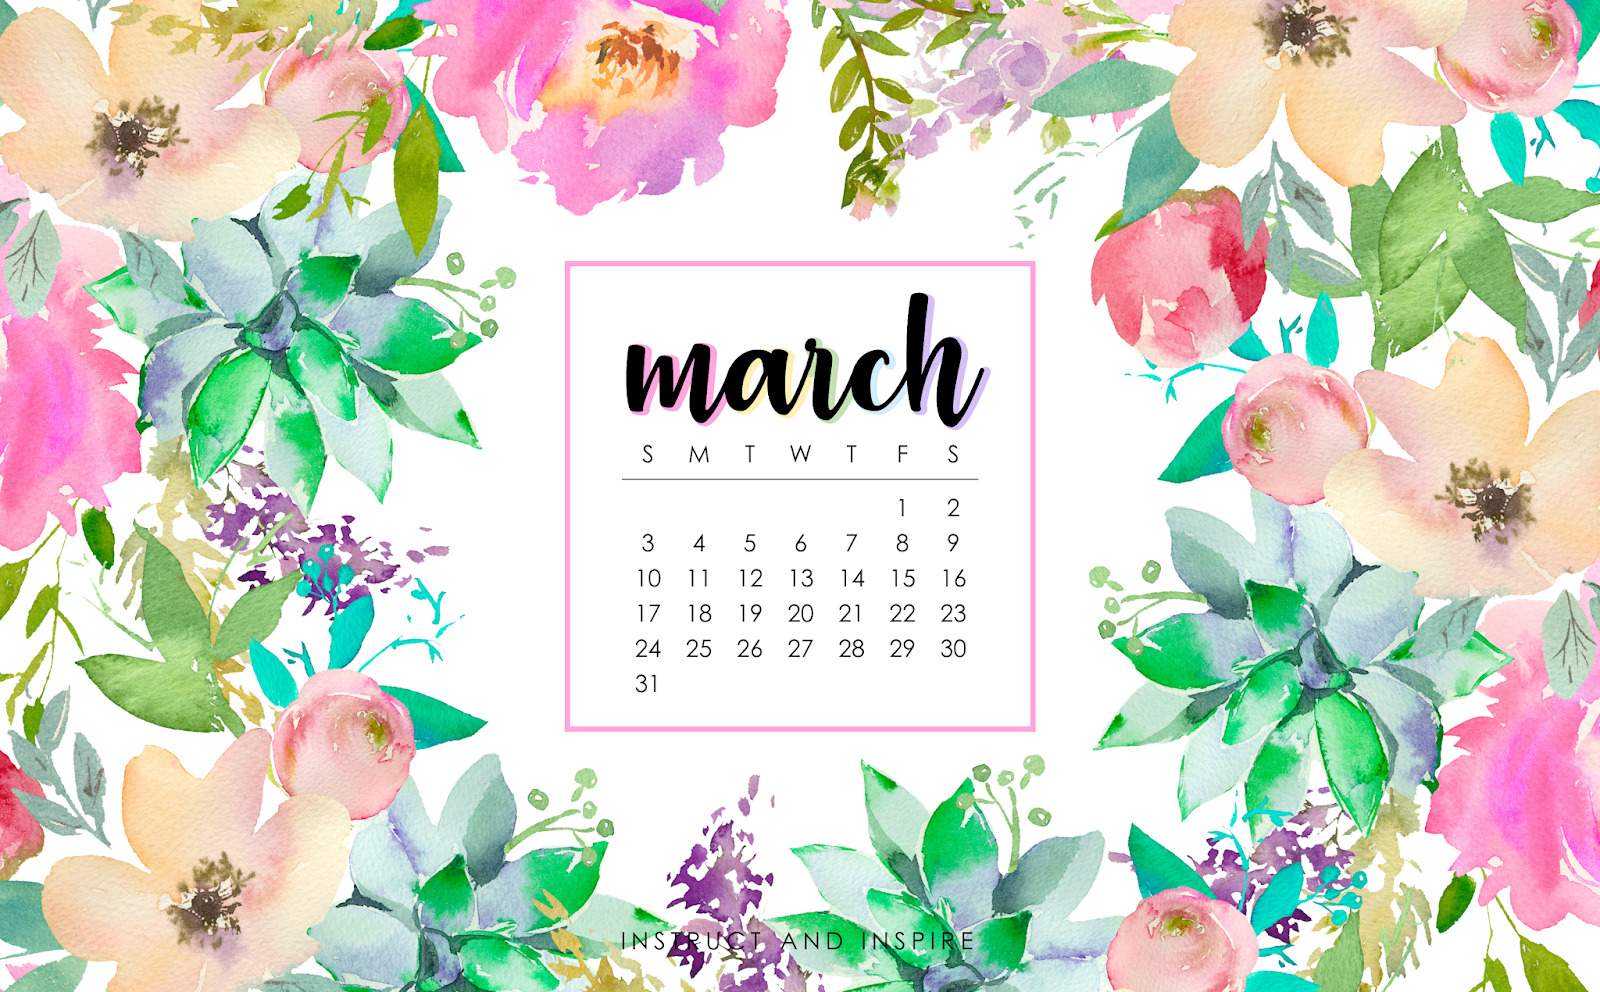 March 2019 Wallpapers Instruct And Inspire